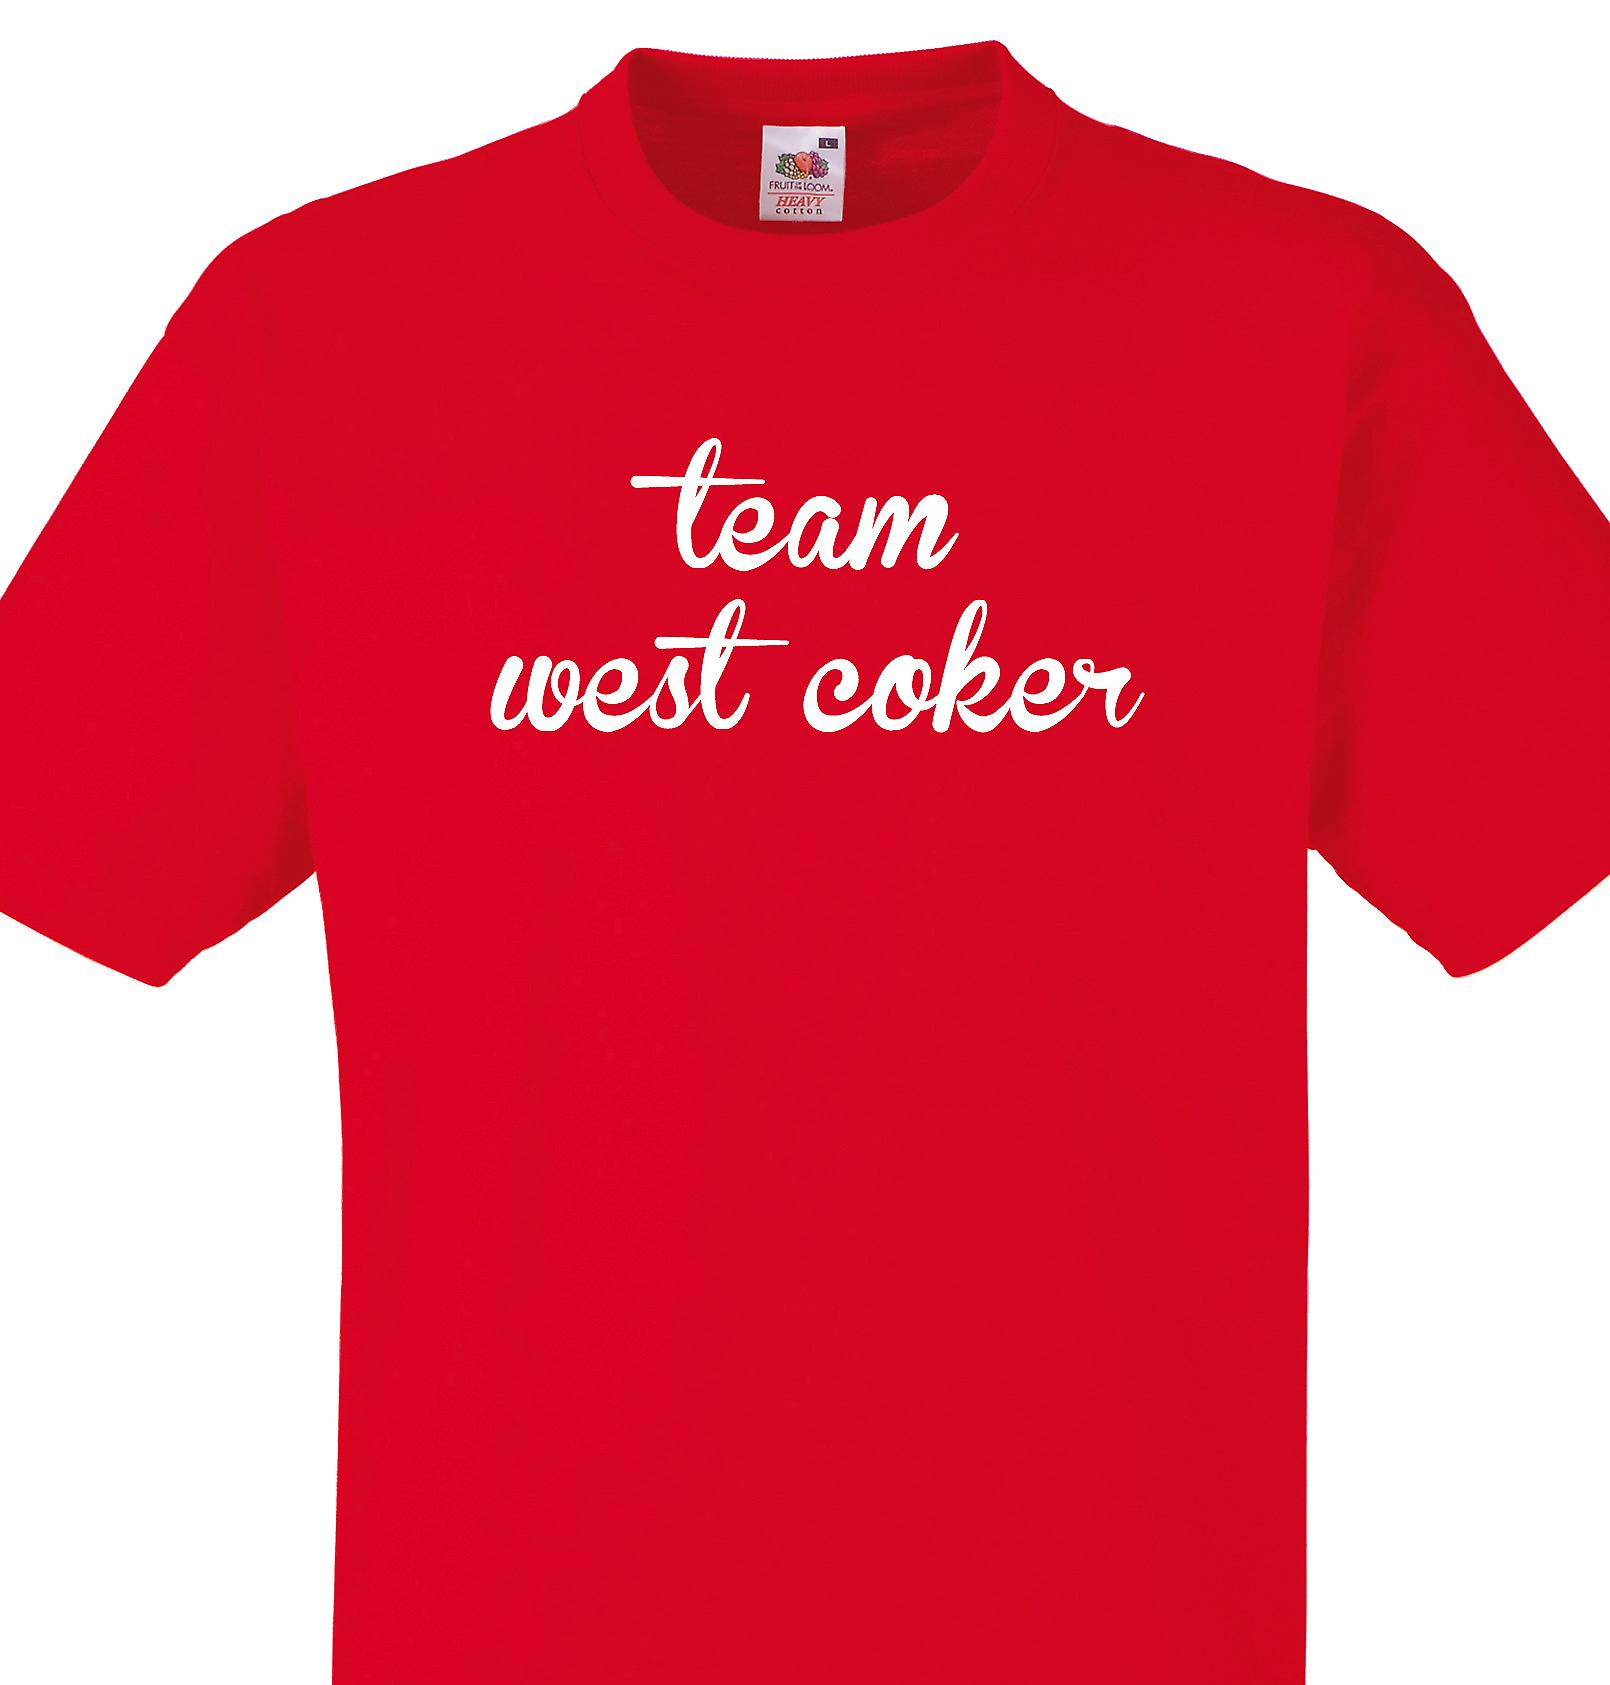 Team West coker Red T shirt